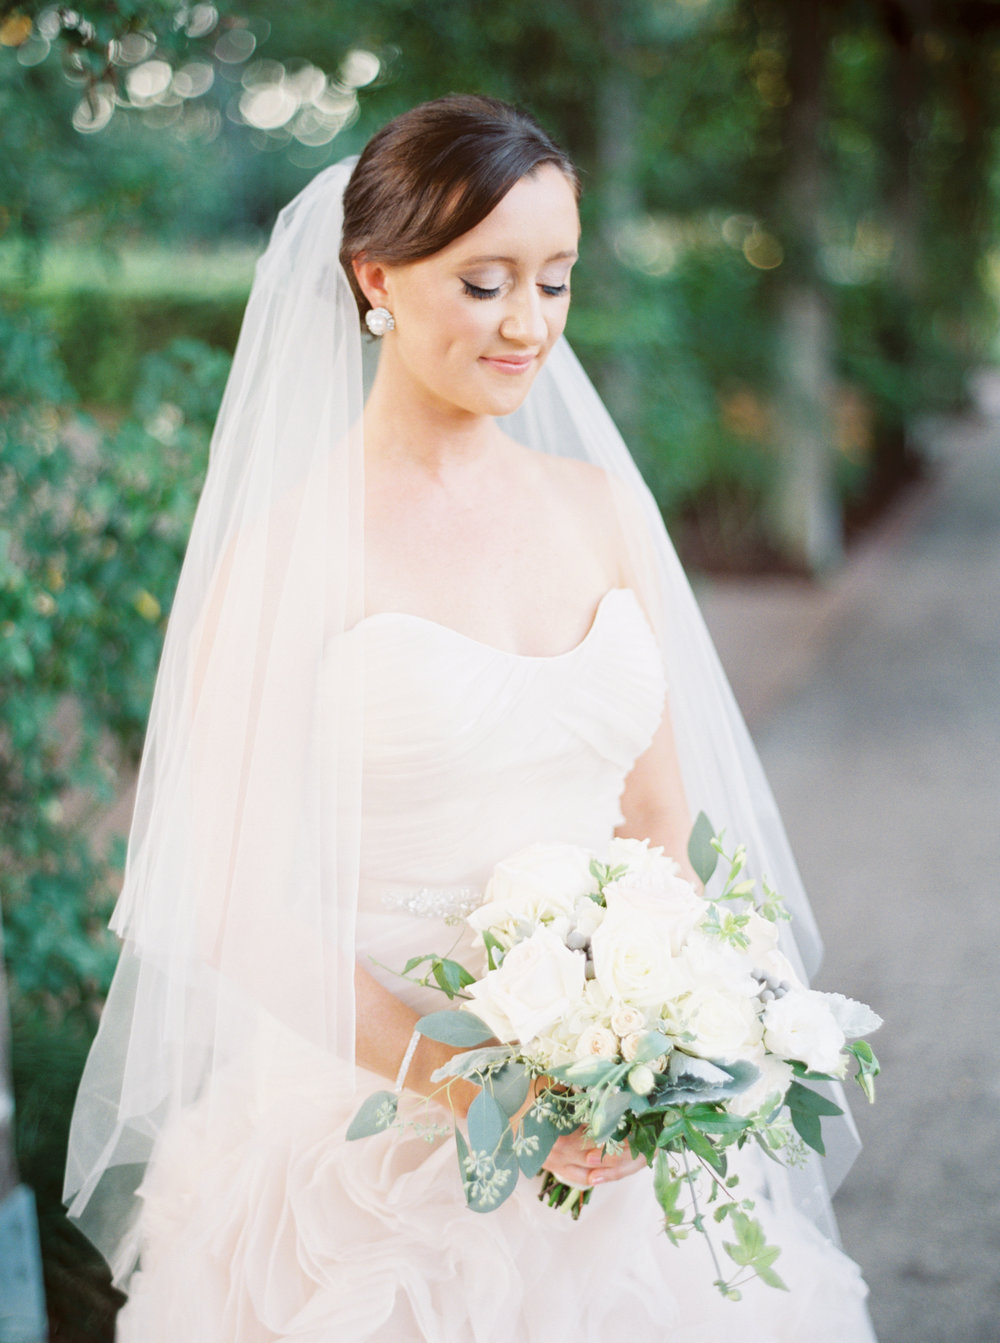 Kimberly_Bridals_Blog_08.JPG